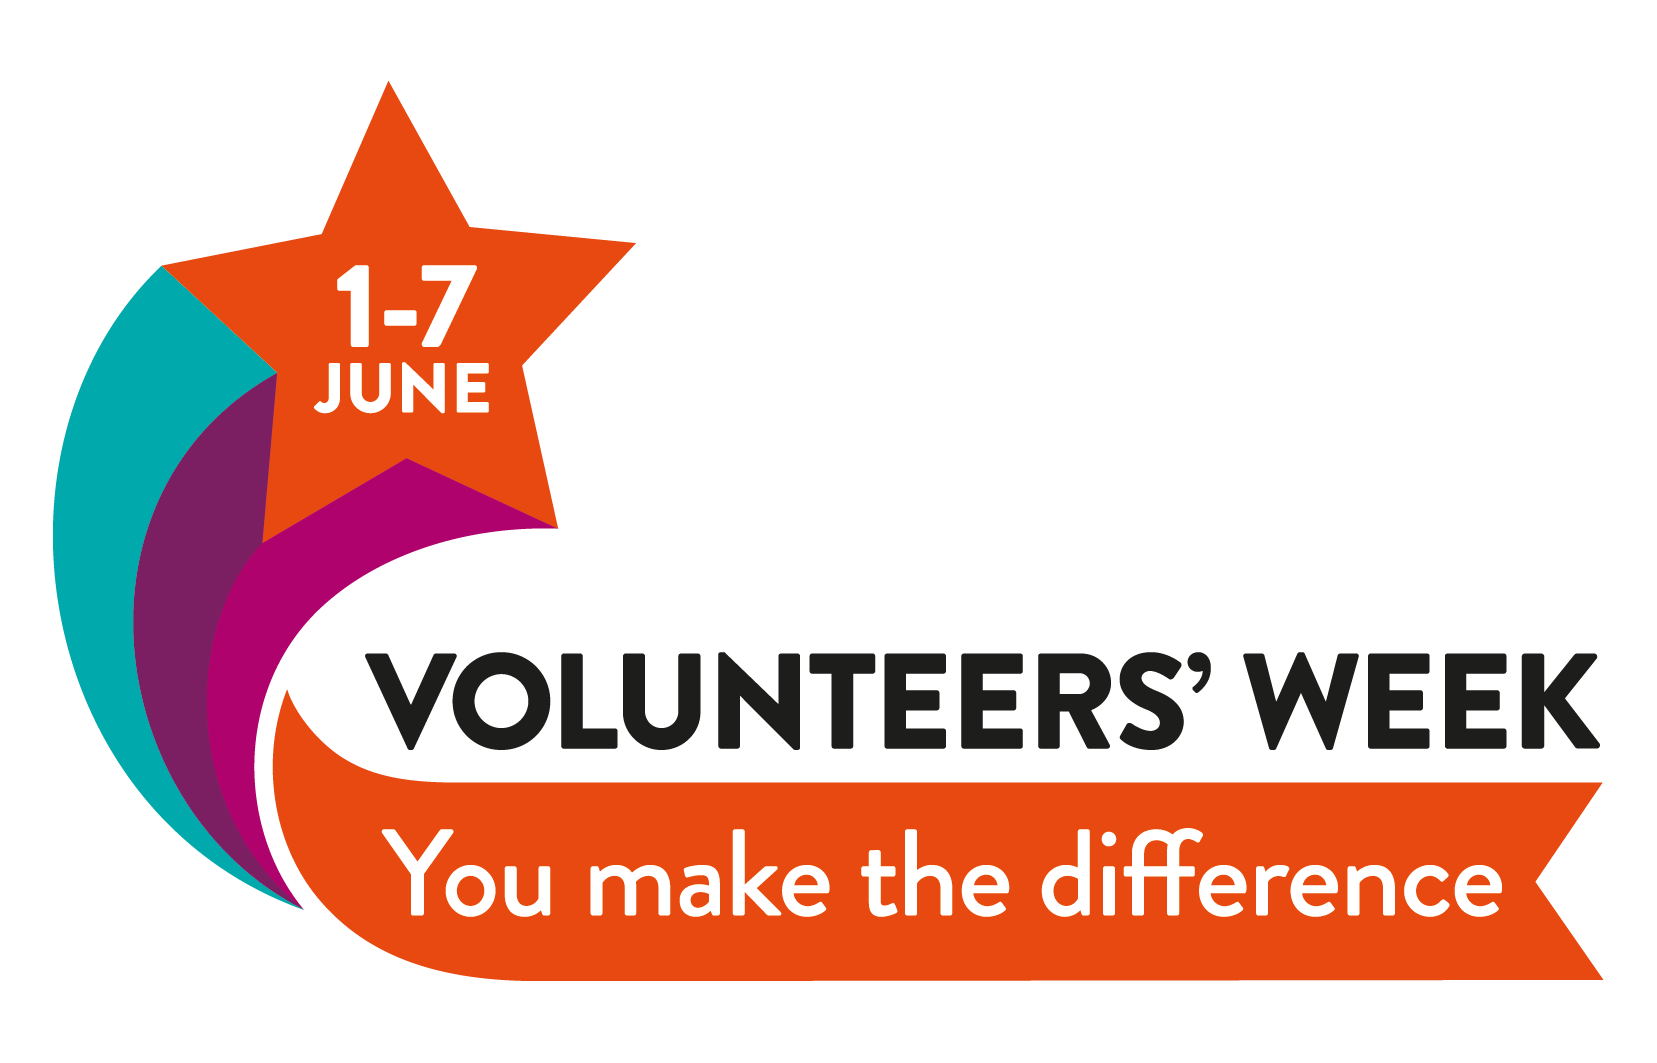 NCVO Volunteers week 2017 logo